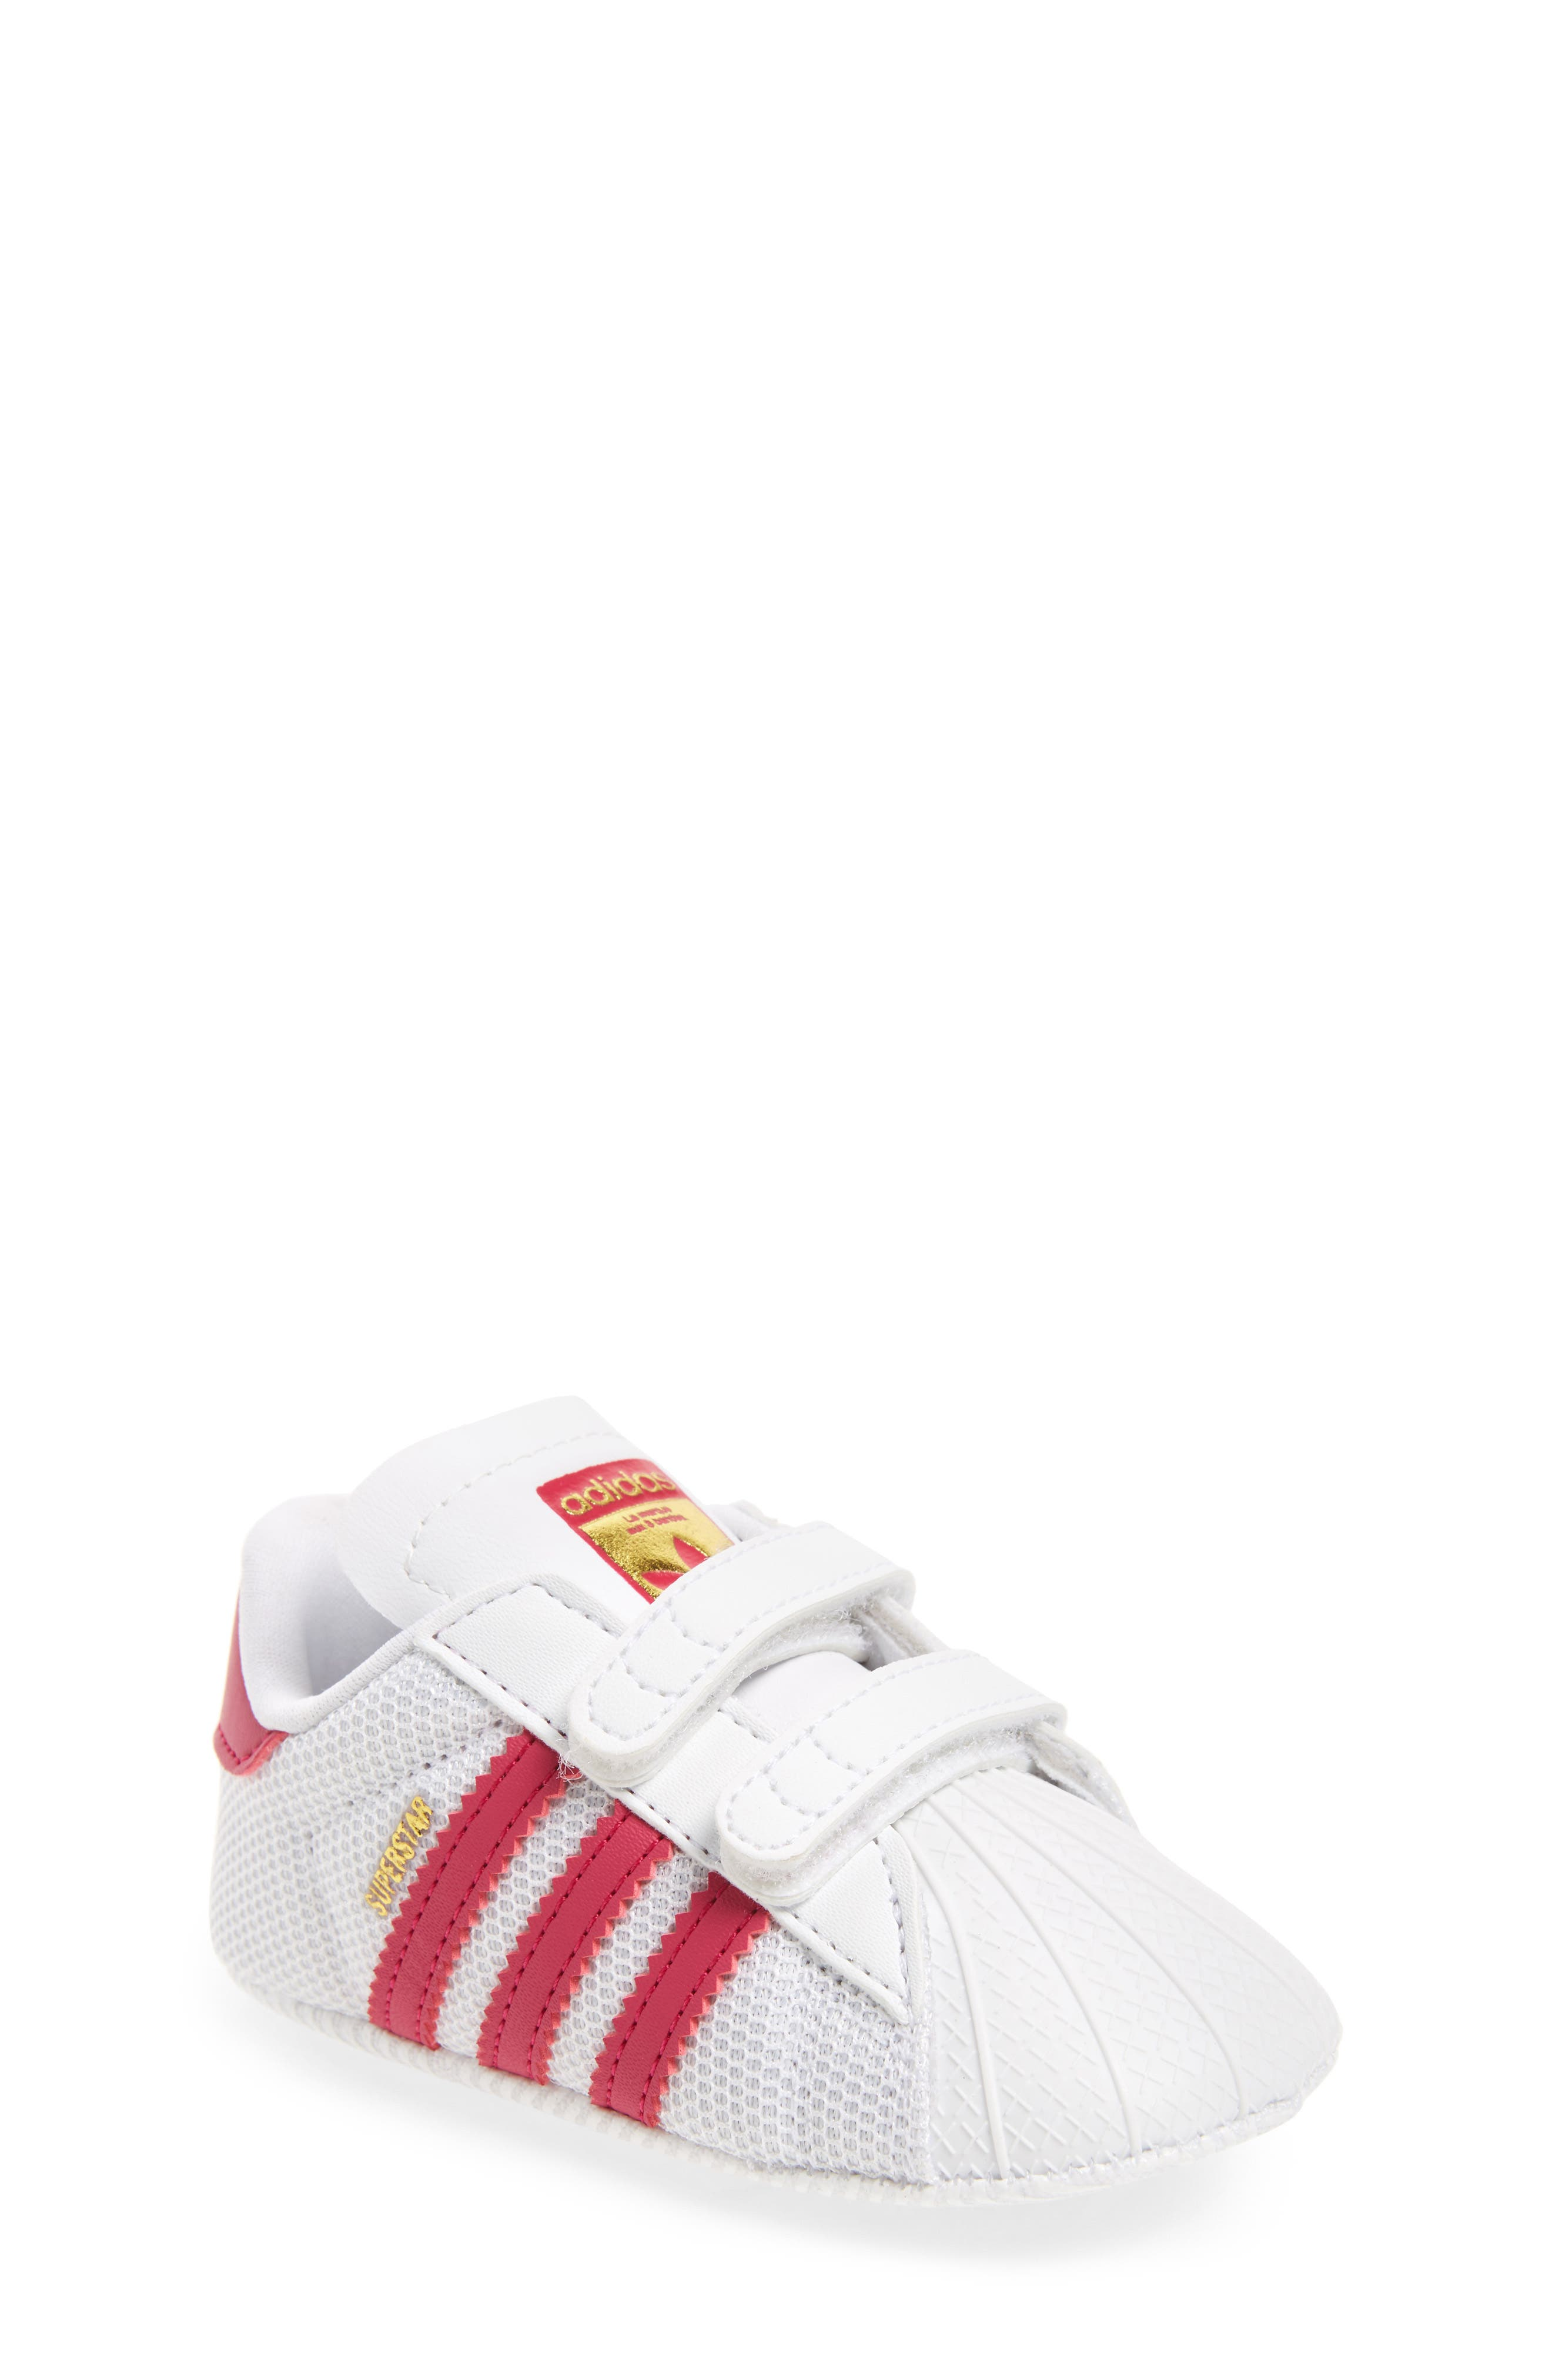 ADIDAS, Superstar Sneaker, Main thumbnail 1, color, WHITE/ PINK